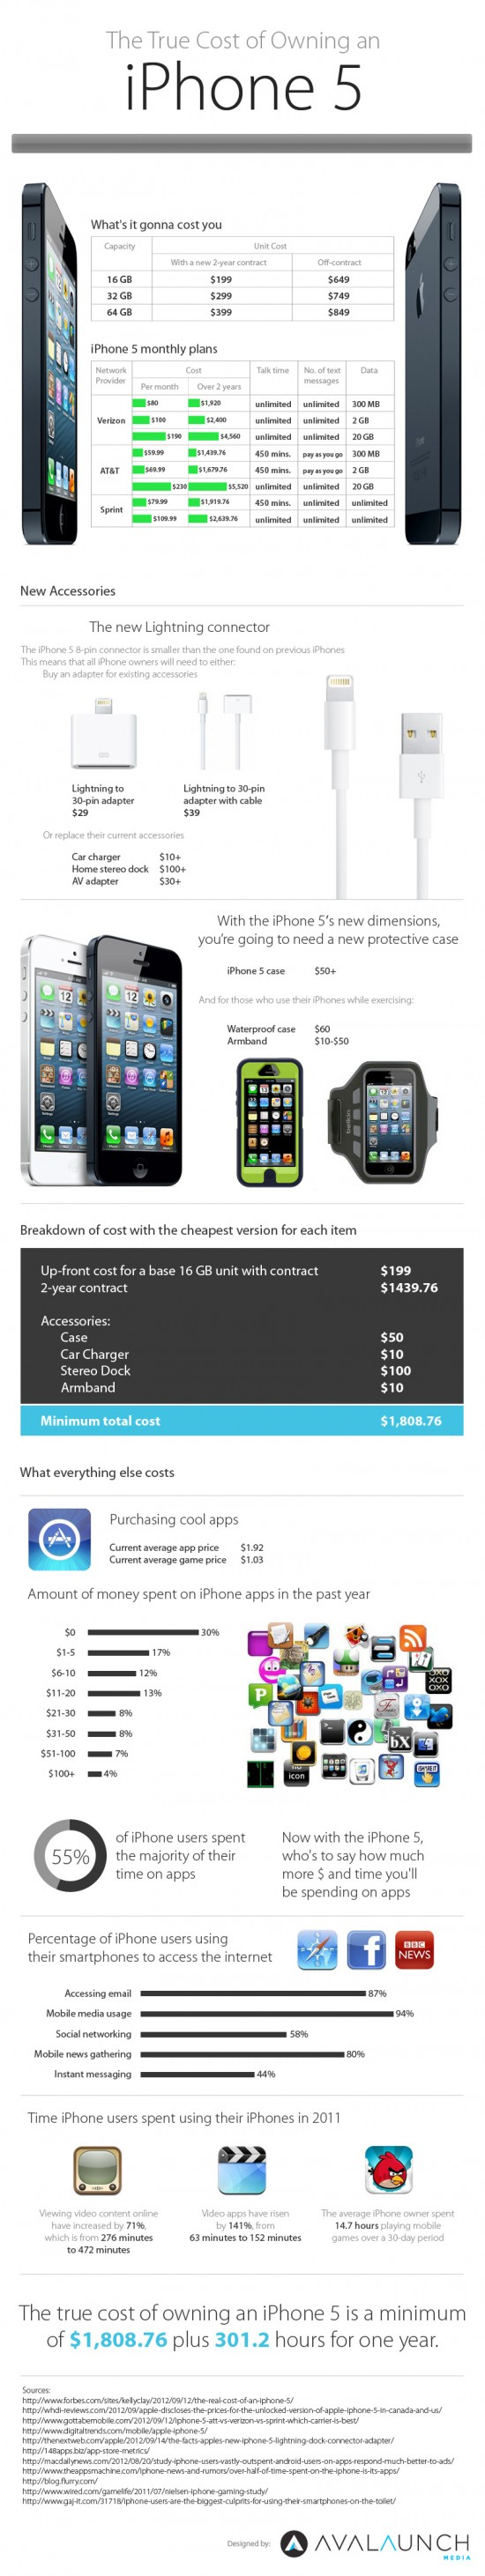 infographic-true-cost-of-iphone-5